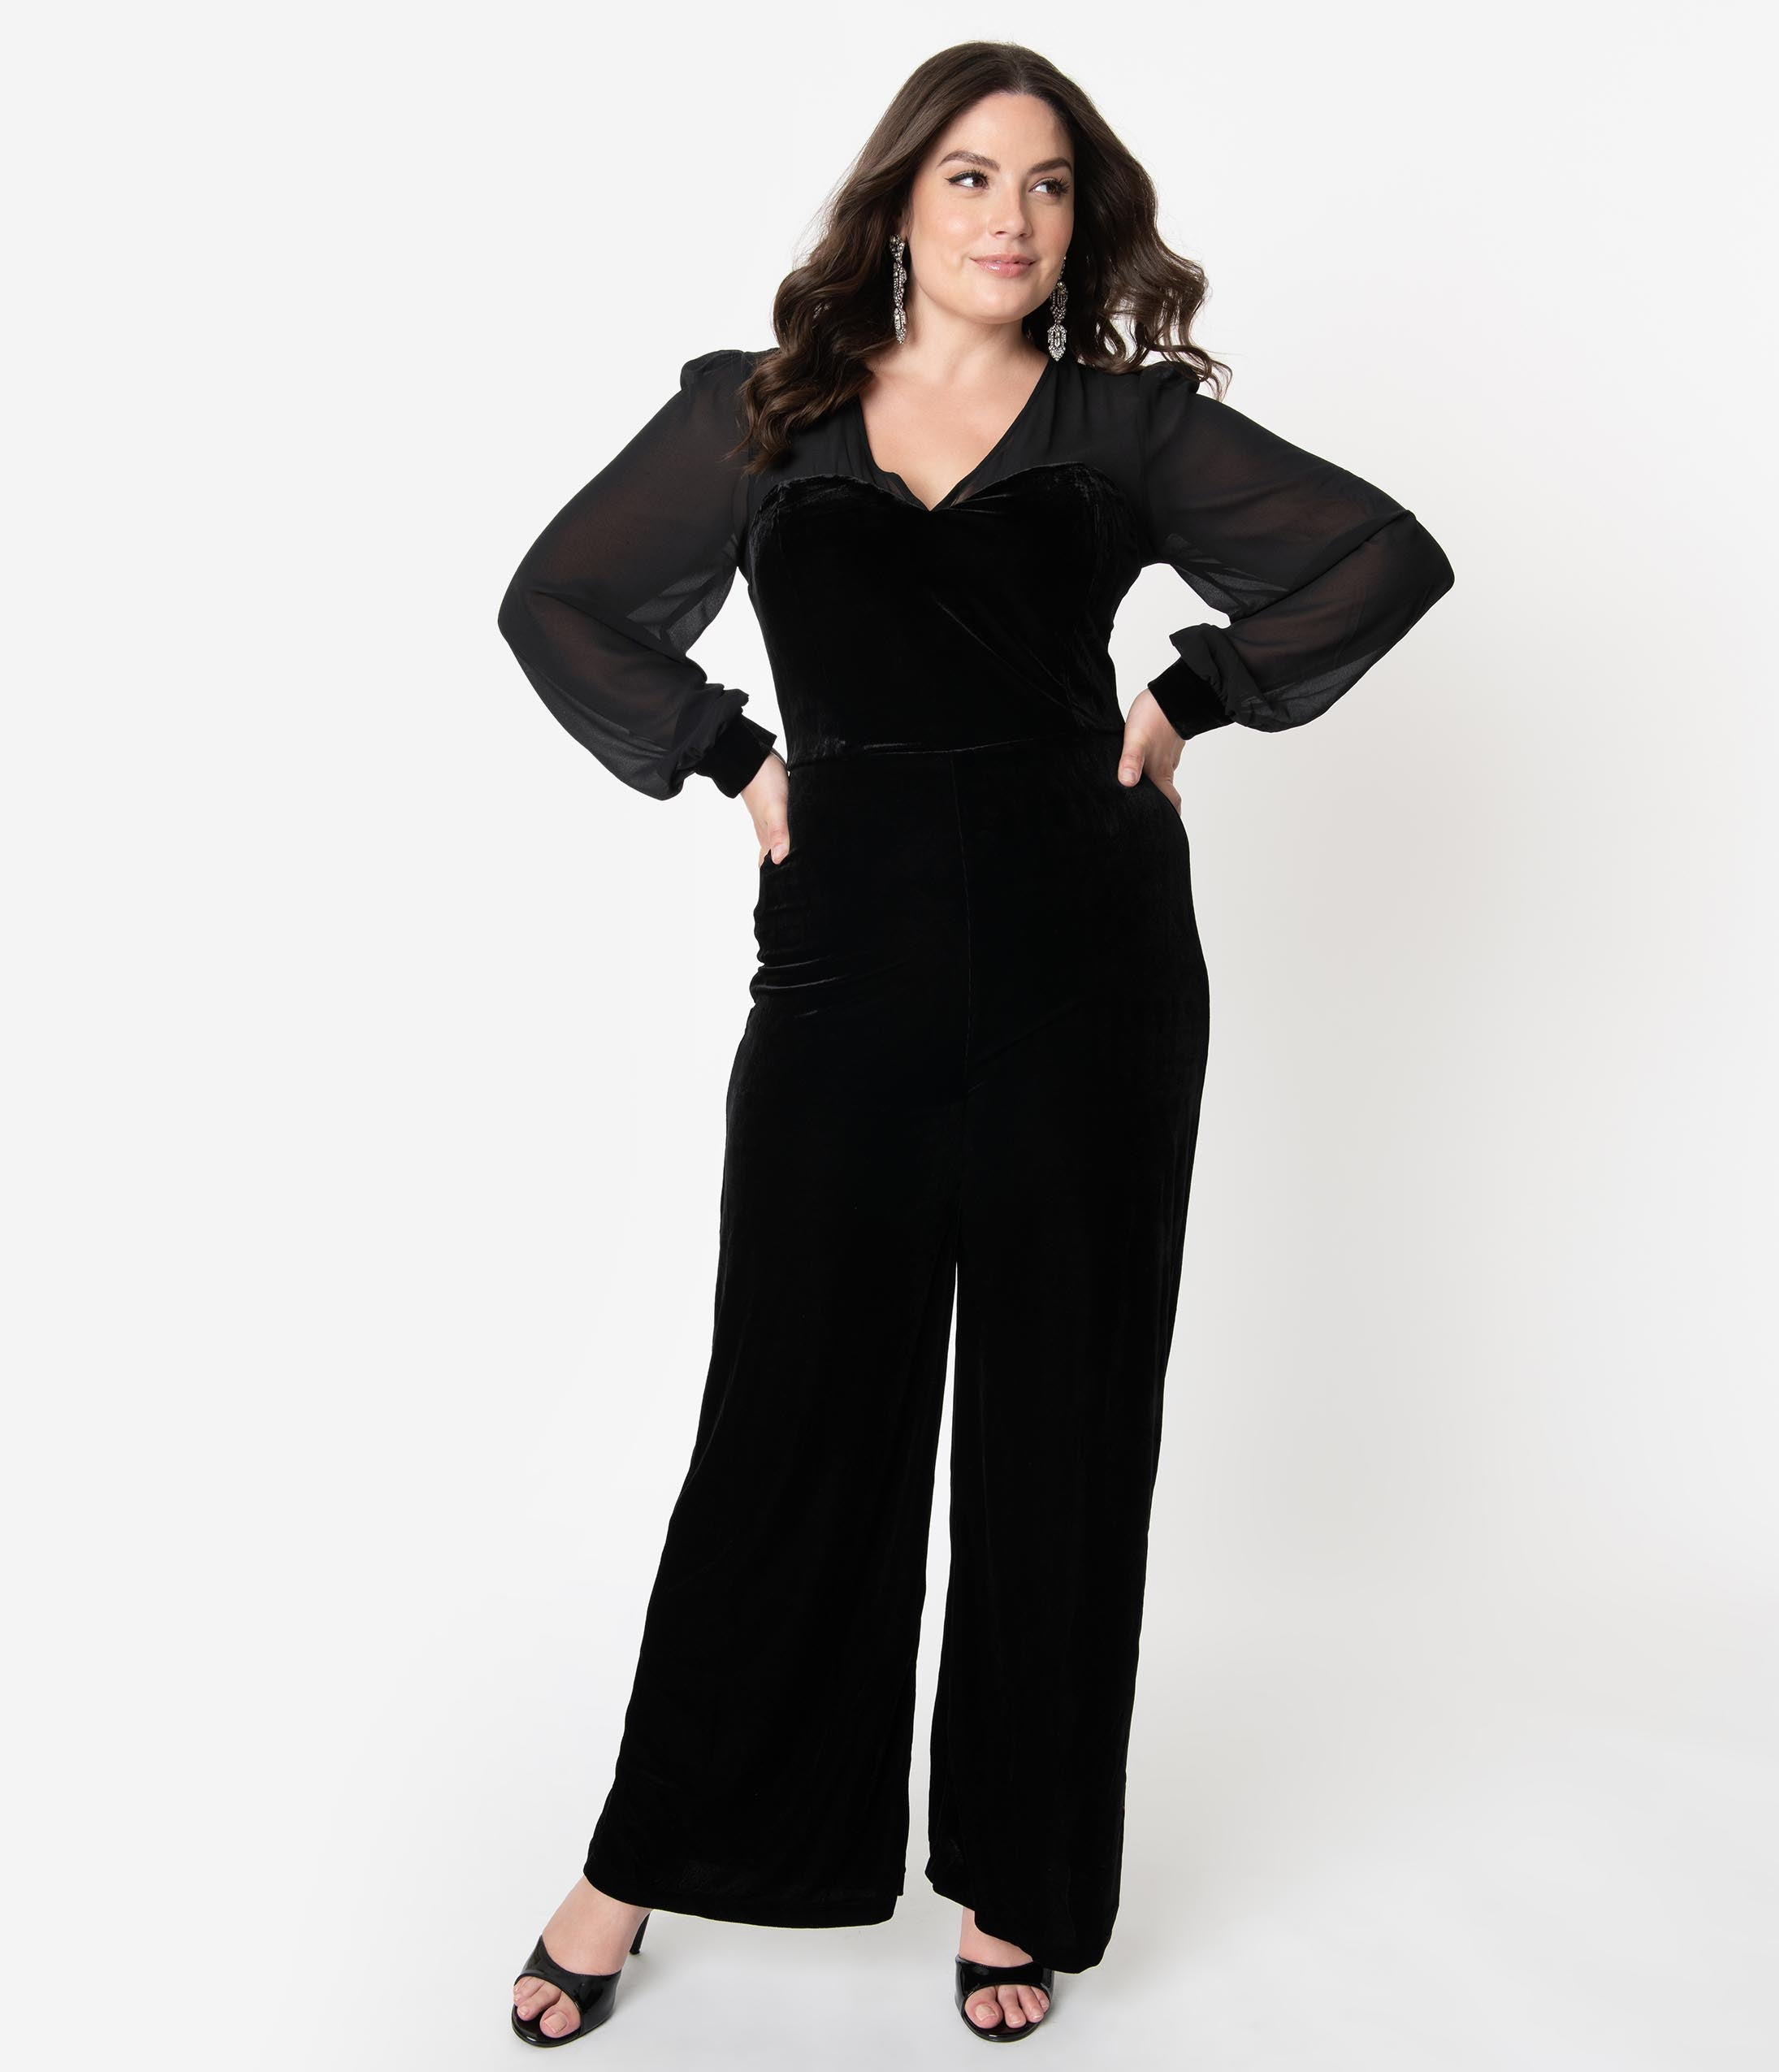 Rockabilly Dresses | Rockabilly Clothing | Viva Las Vegas Collectif Plus Size Black Stretch Off The Shoulder Sasha Fishtail Wiggle Dress $88.00 AT vintagedancer.com